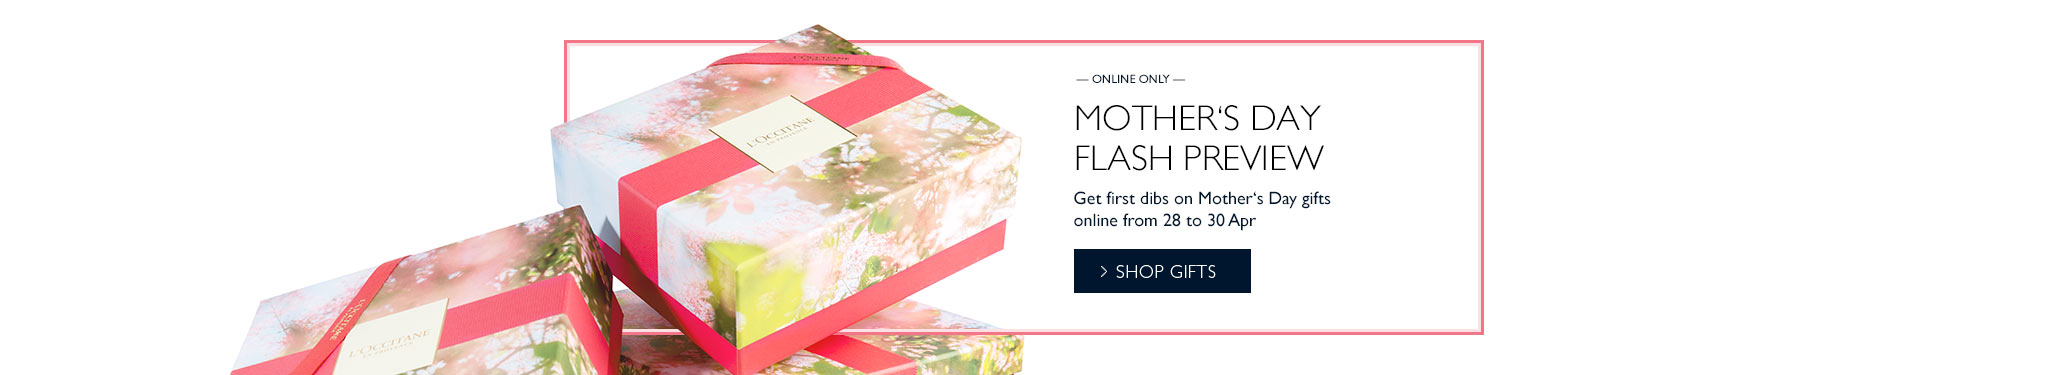 Online Only: Mother's Day Preview